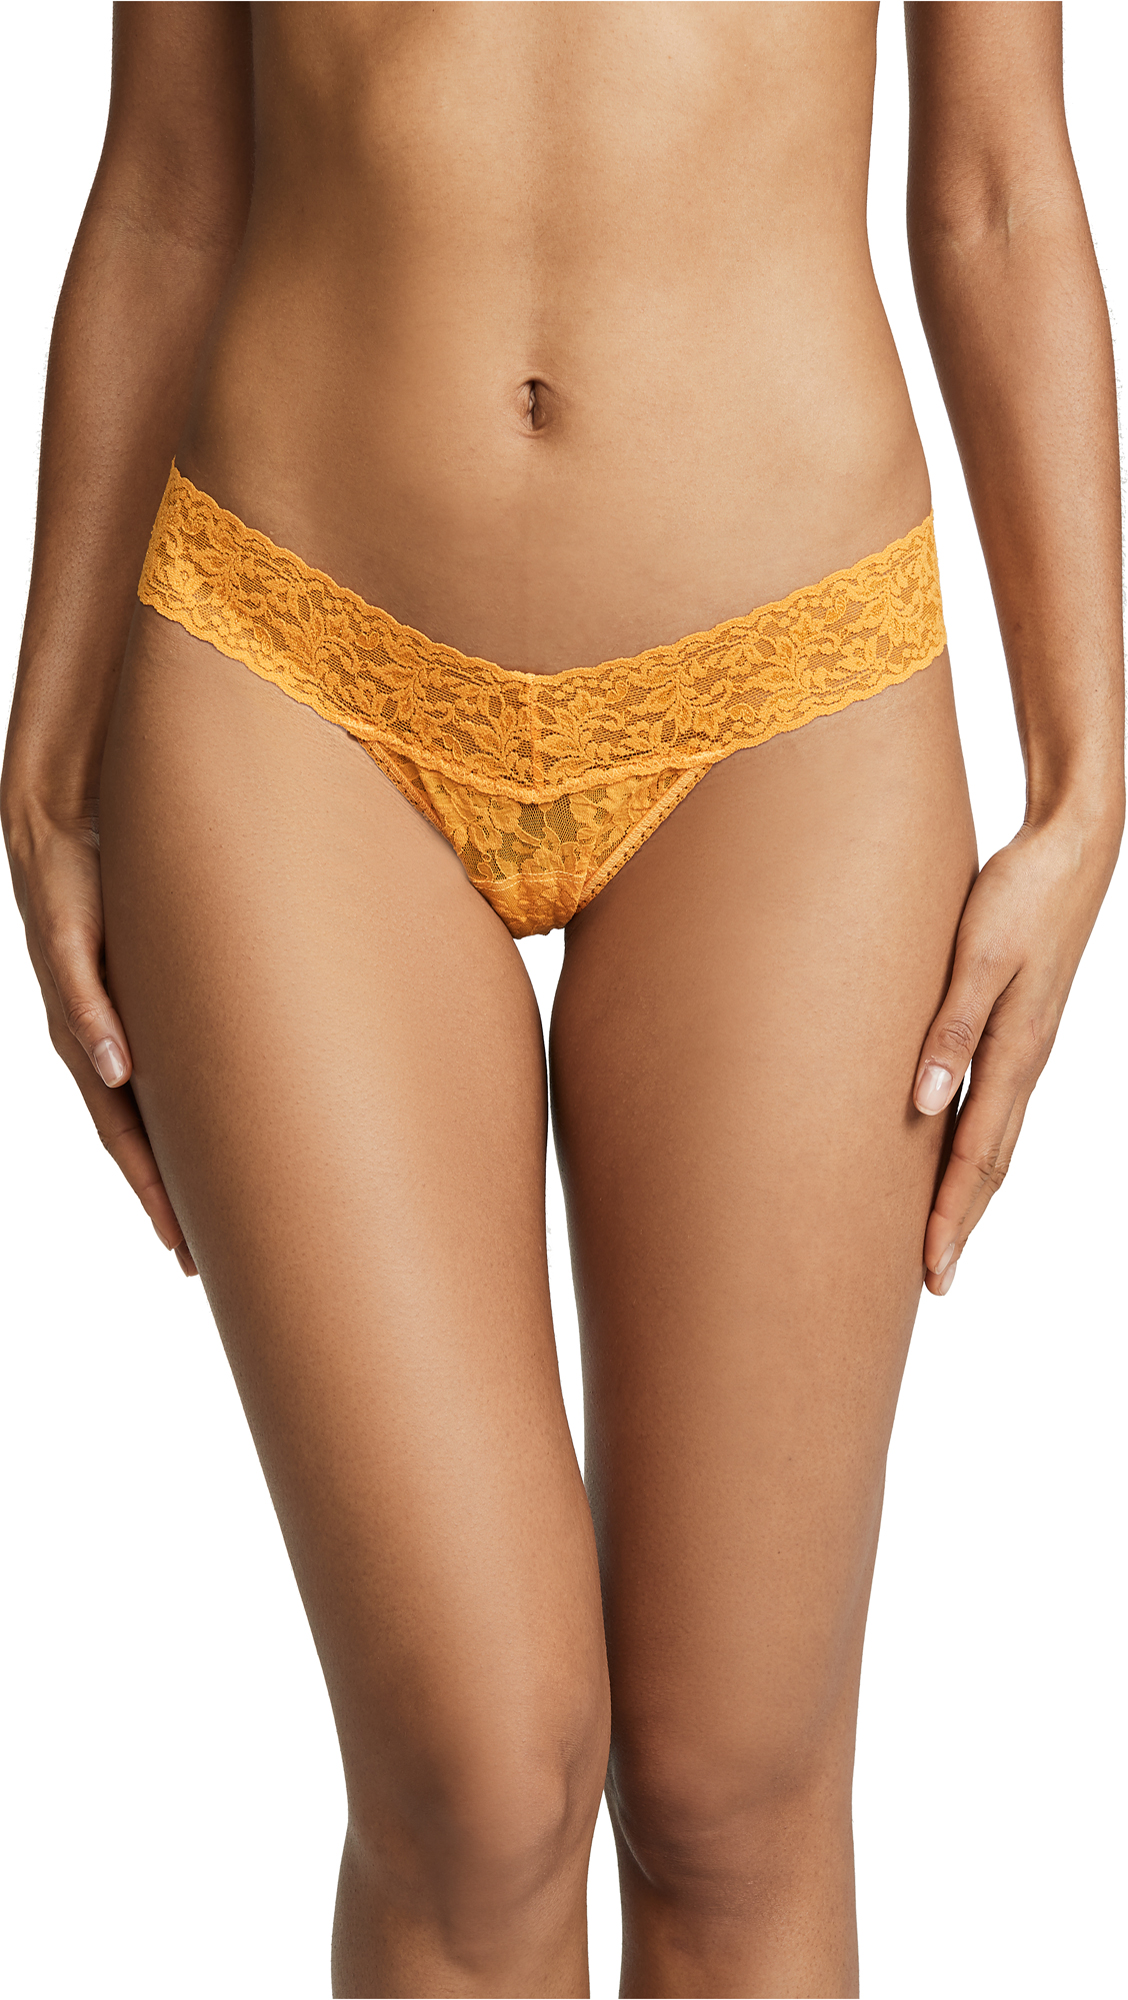 d8813be77 Hanky Panky Signature Lace Low Rise Thong